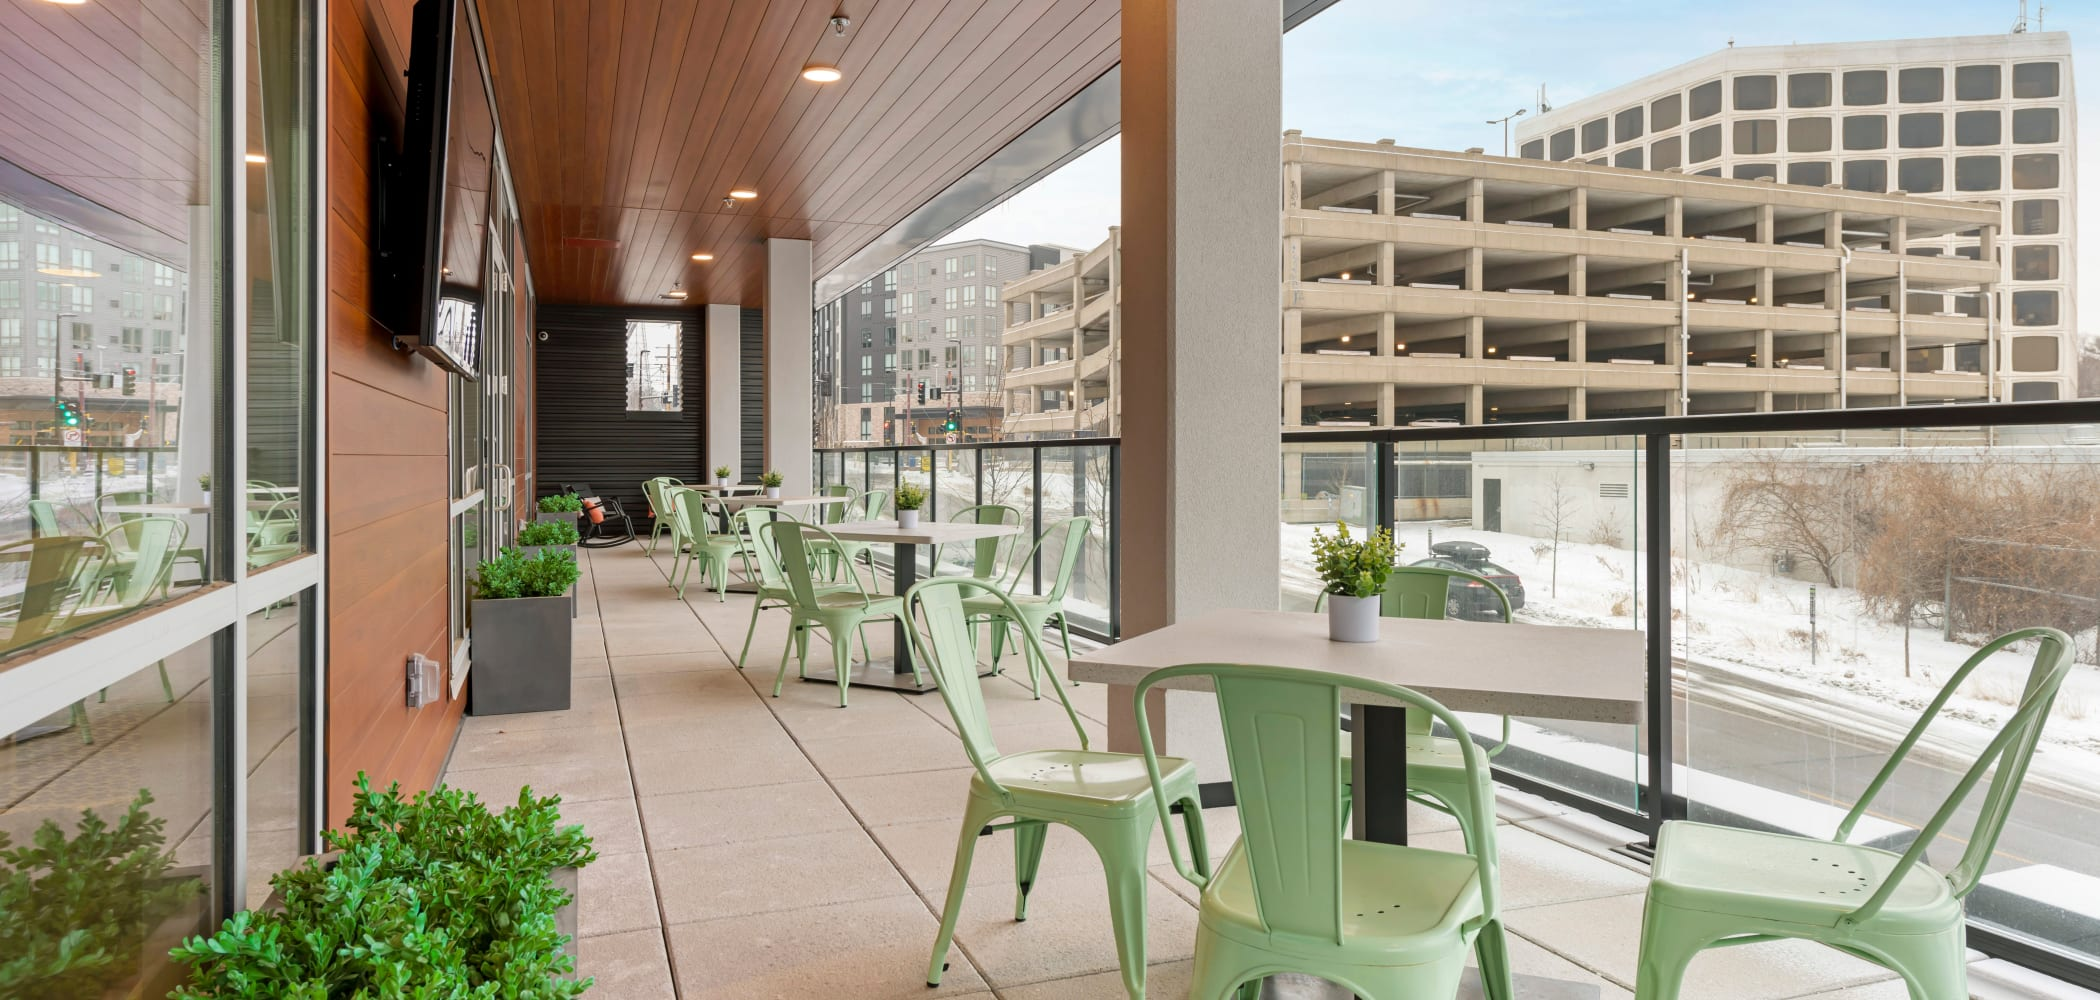 Outdoor patio area with tables and chairs at HERE Minneapolis in Minneapolis, Minnesota